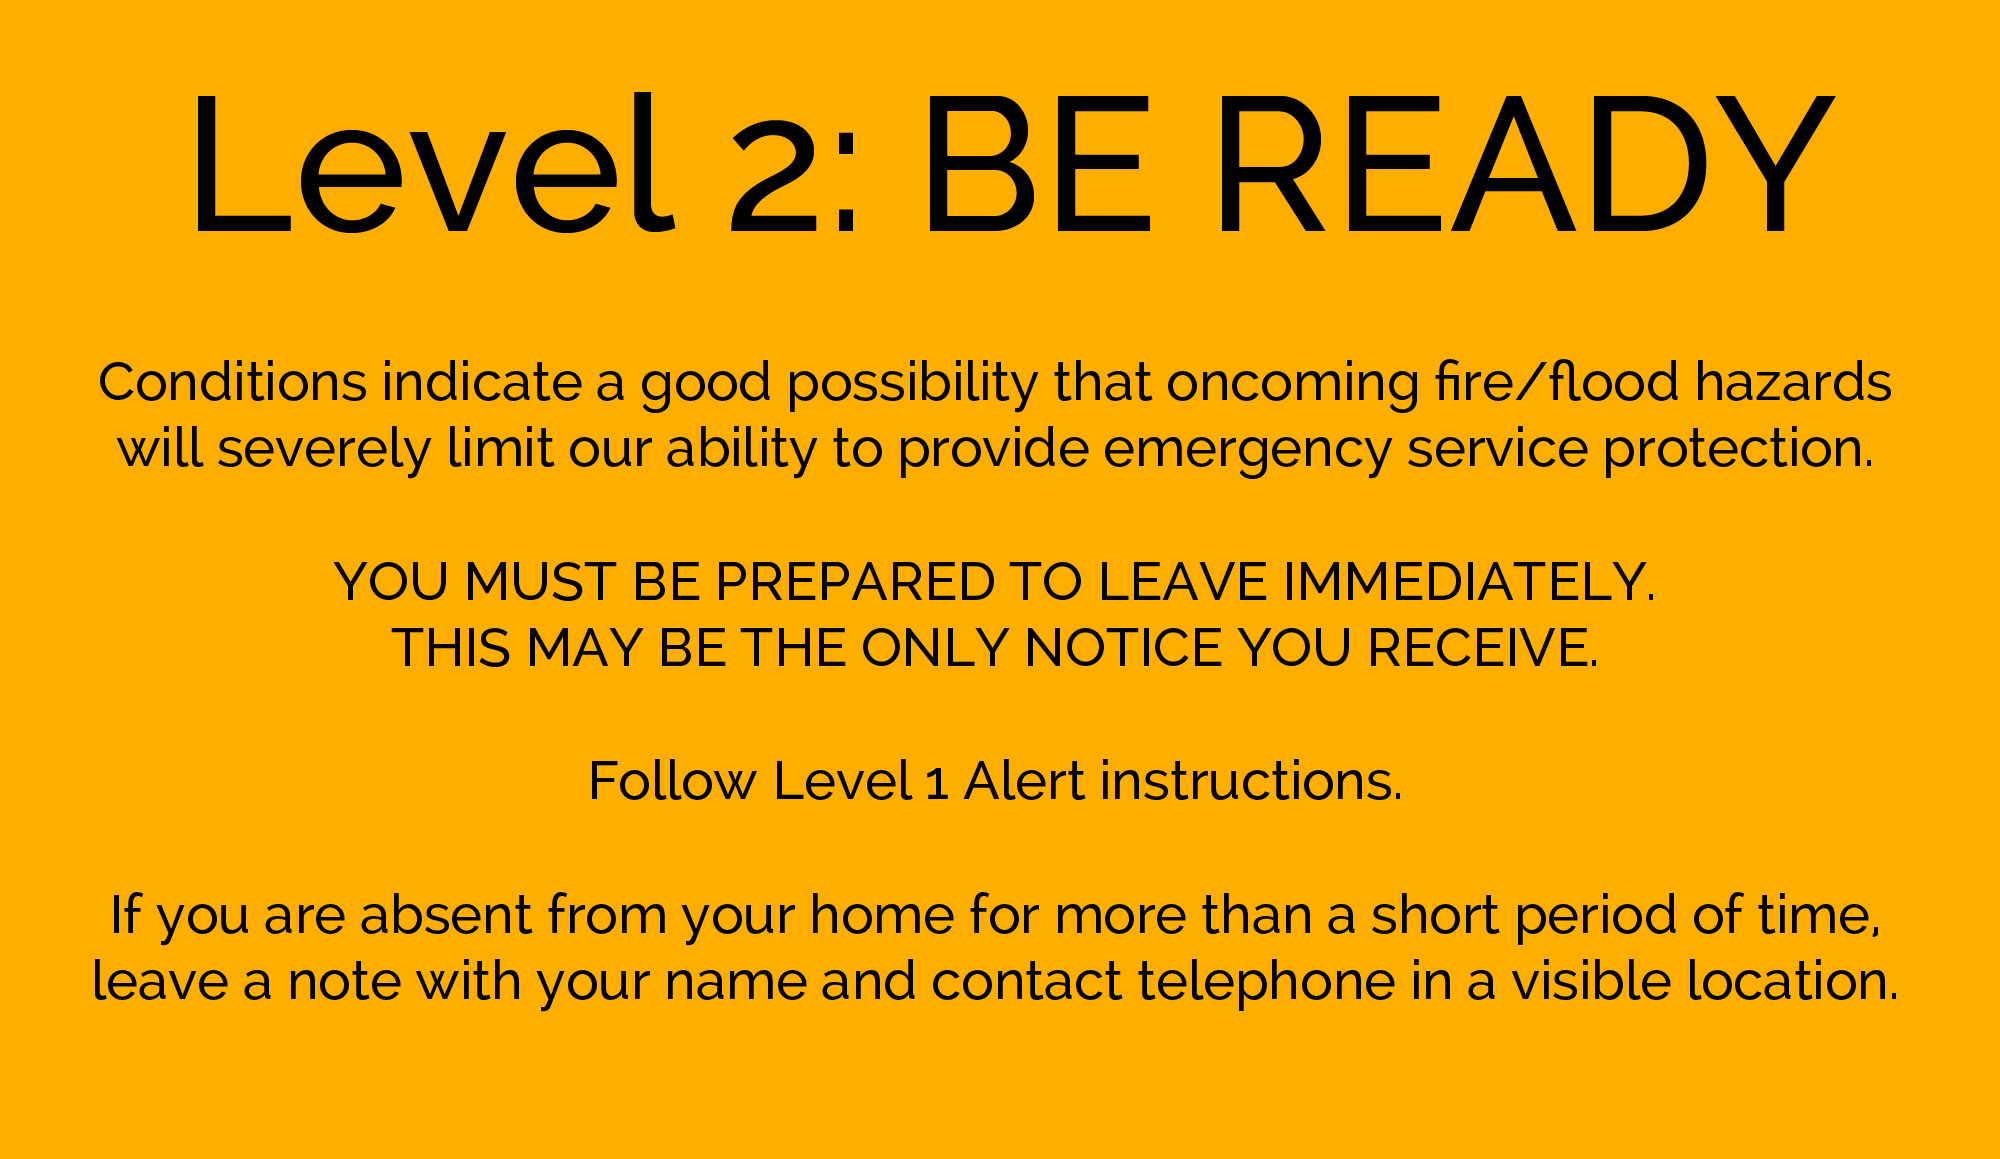 Level 2: BE READY